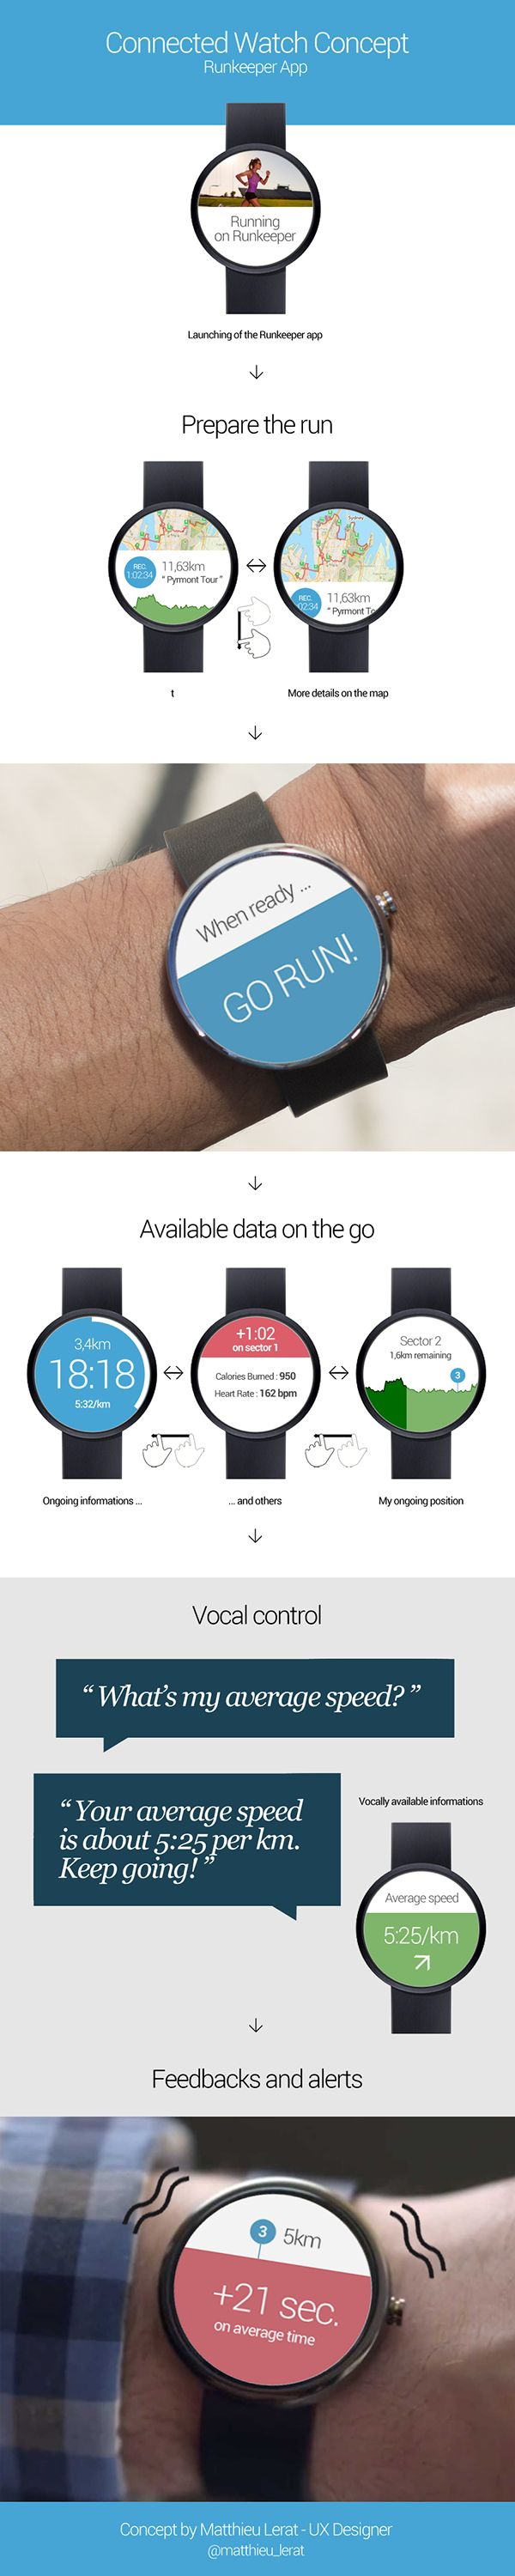 Runkeeper App Concept | Smart Watch - Android Wear on Behance